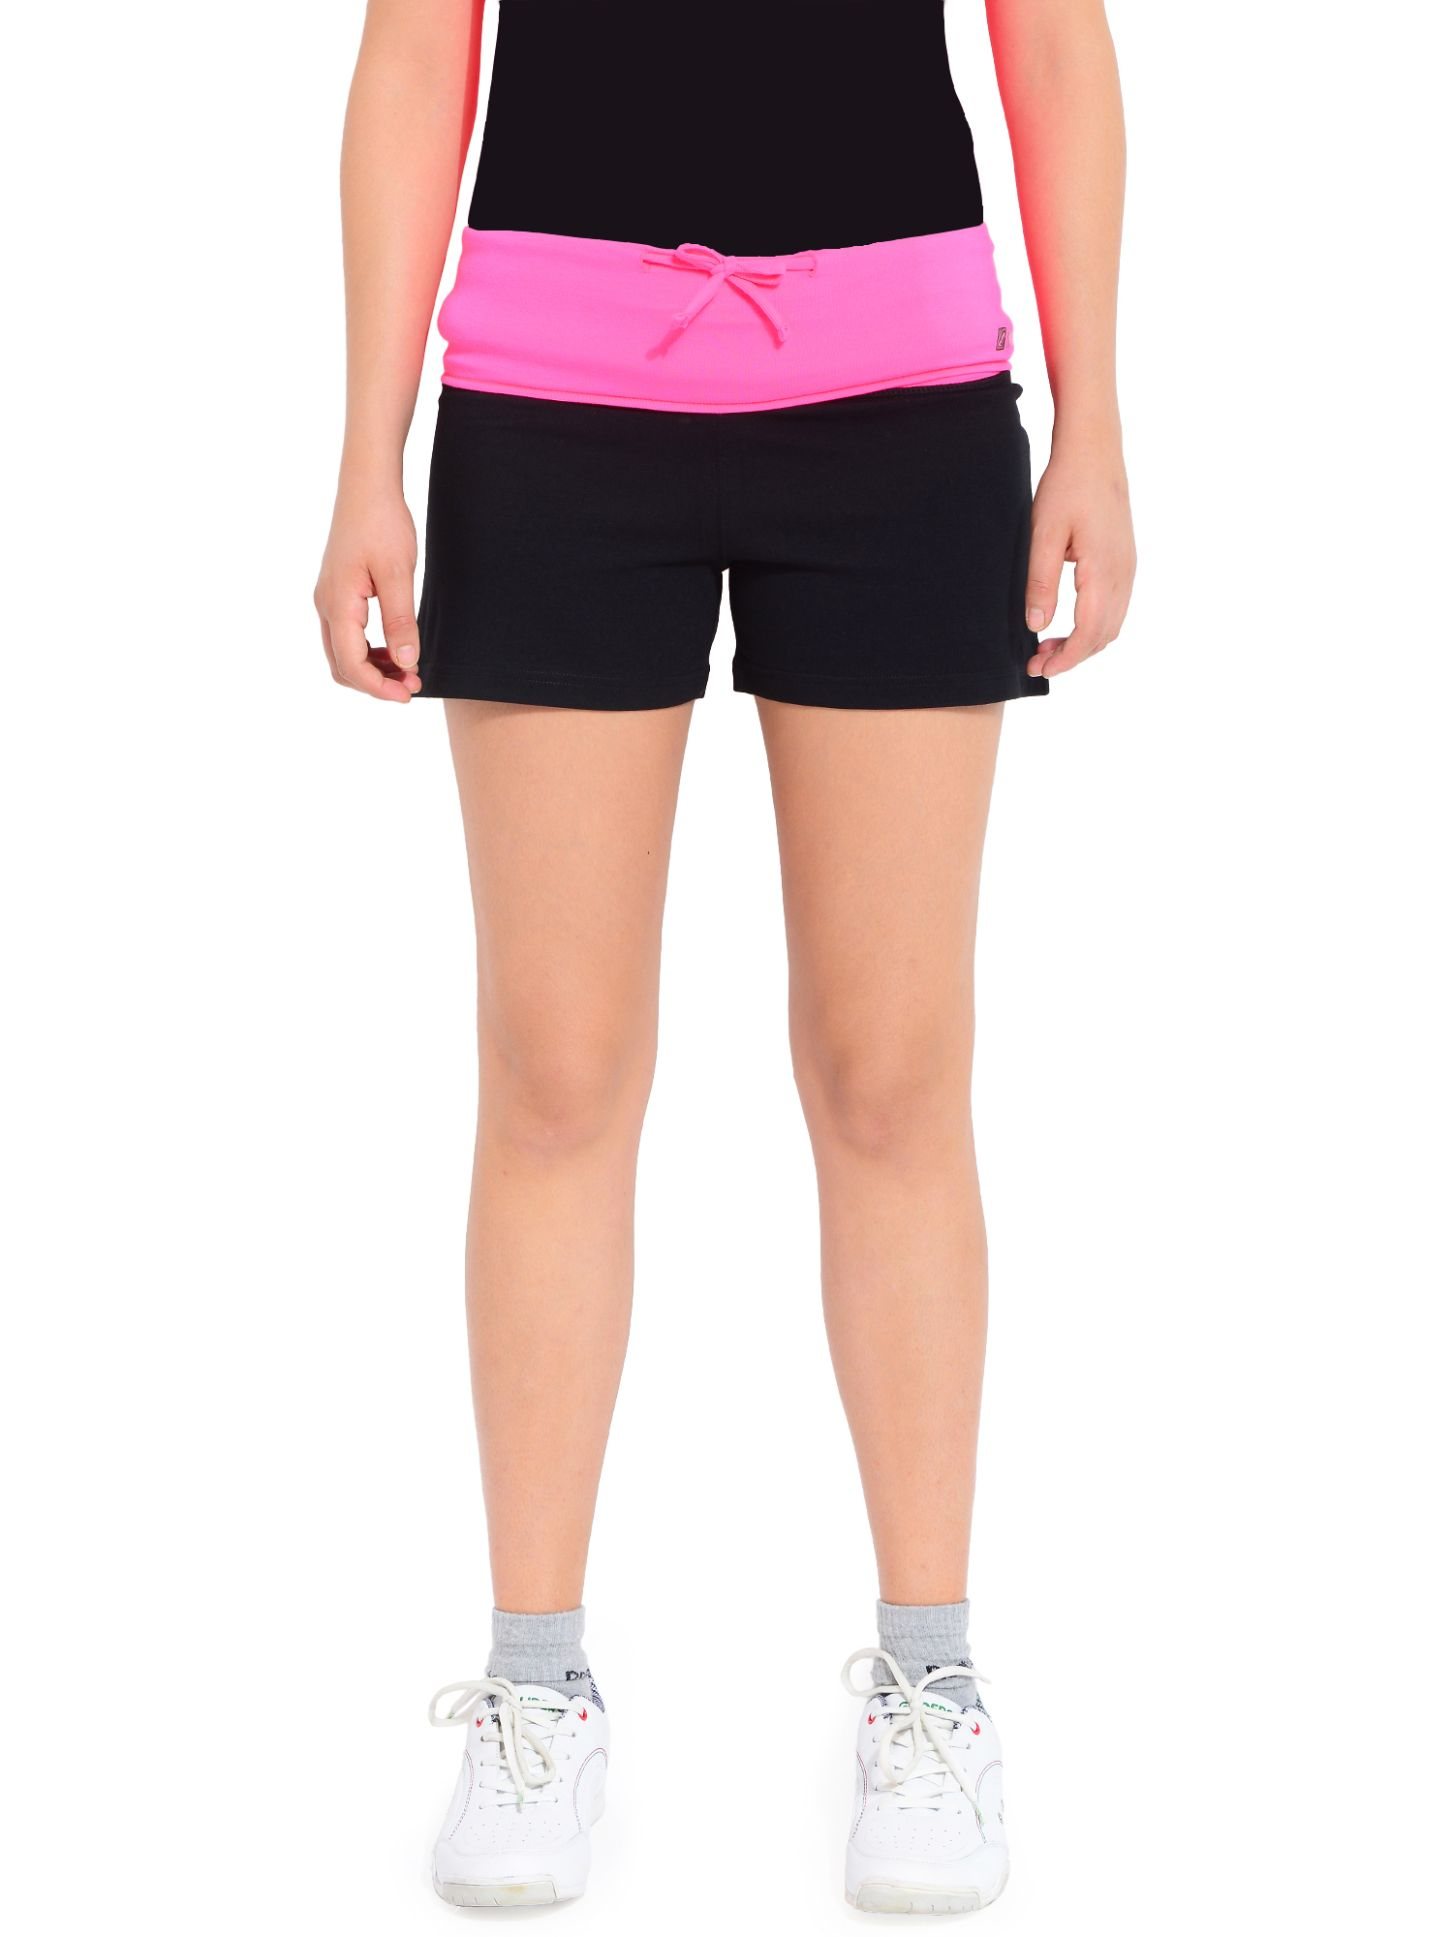 ATIVO Solid Women's Pink, Black Sports Shorts